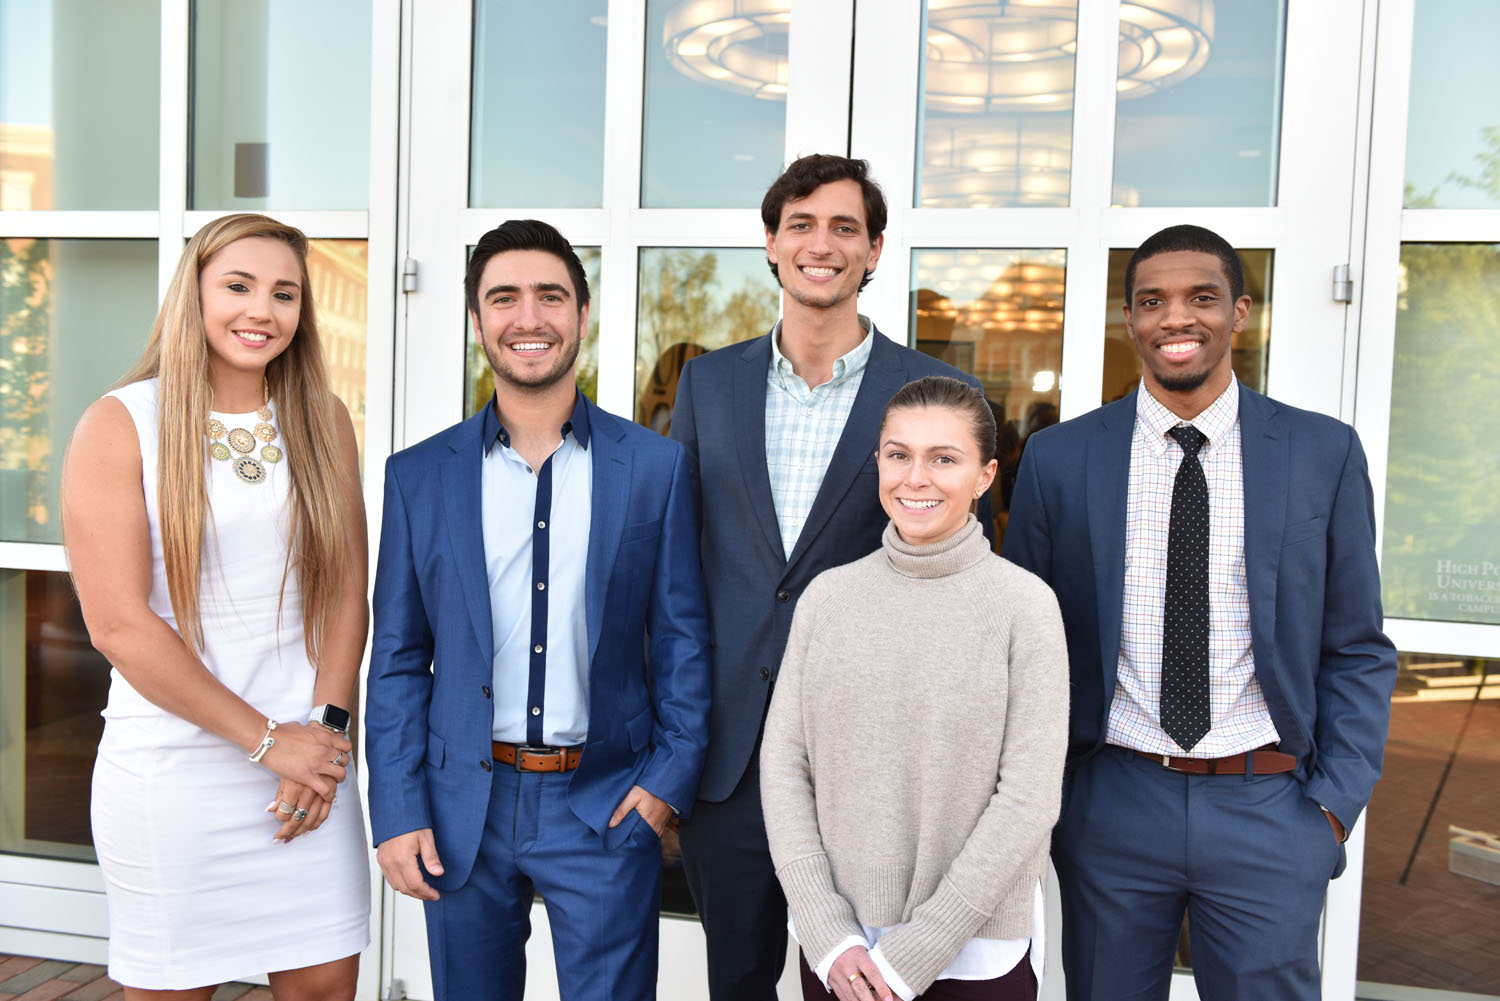 HPU Students Win $25.000 in Start-Up Funds at 2018 Business Plan Competition | High Point University | High Point. NC